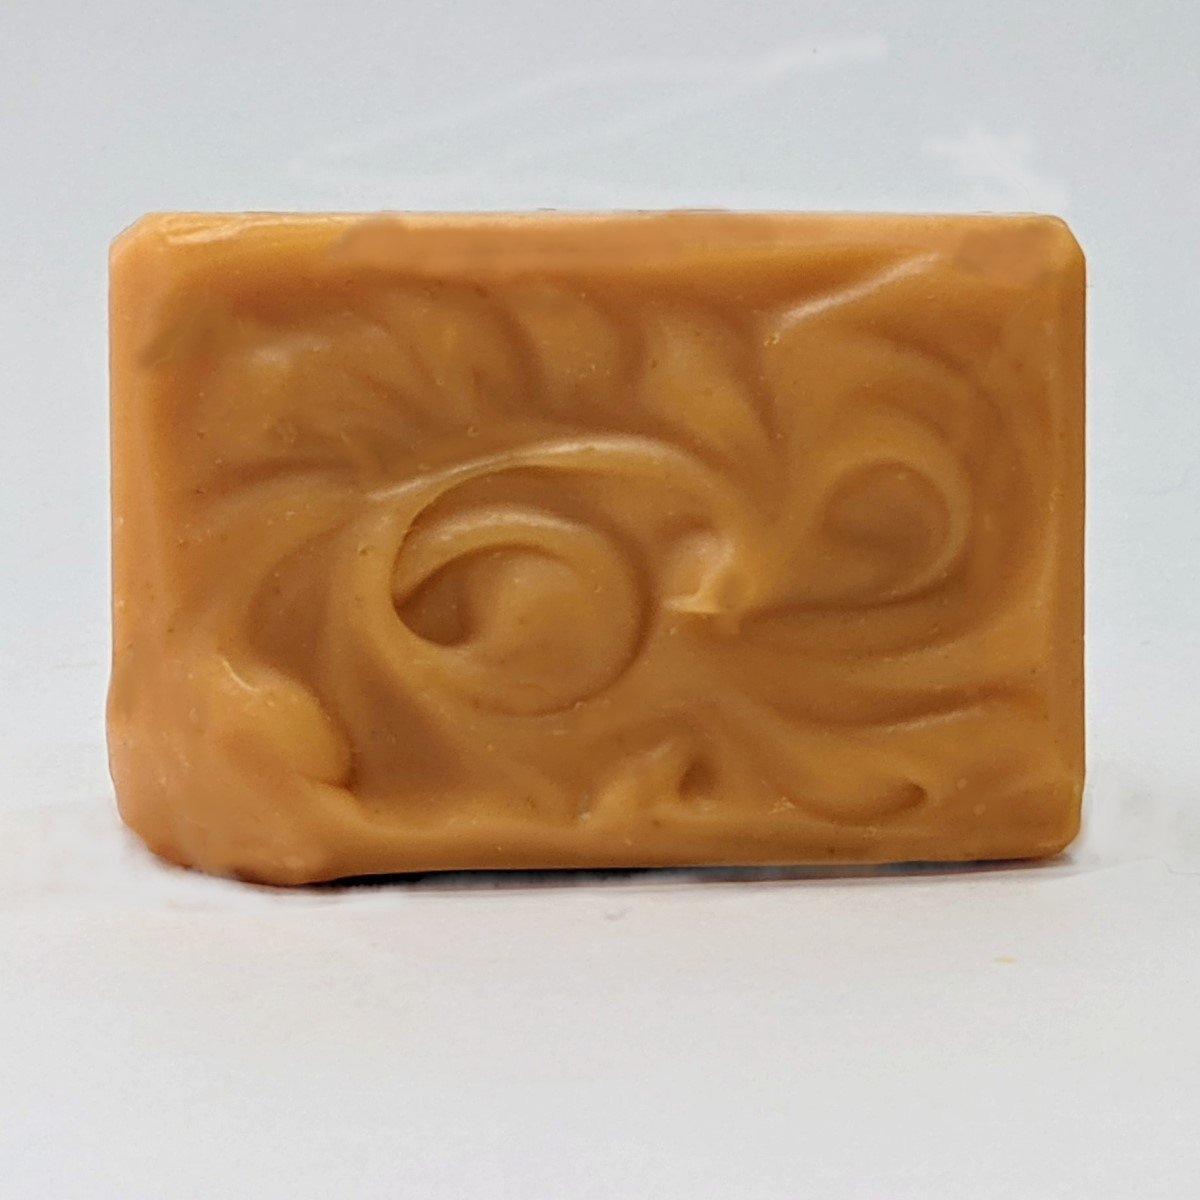 Apple Cinnamon Goat's Milk Soap Bar, All Natural with Honey, Shea, and Cocoa Butter - Thompson's Luxury Soap